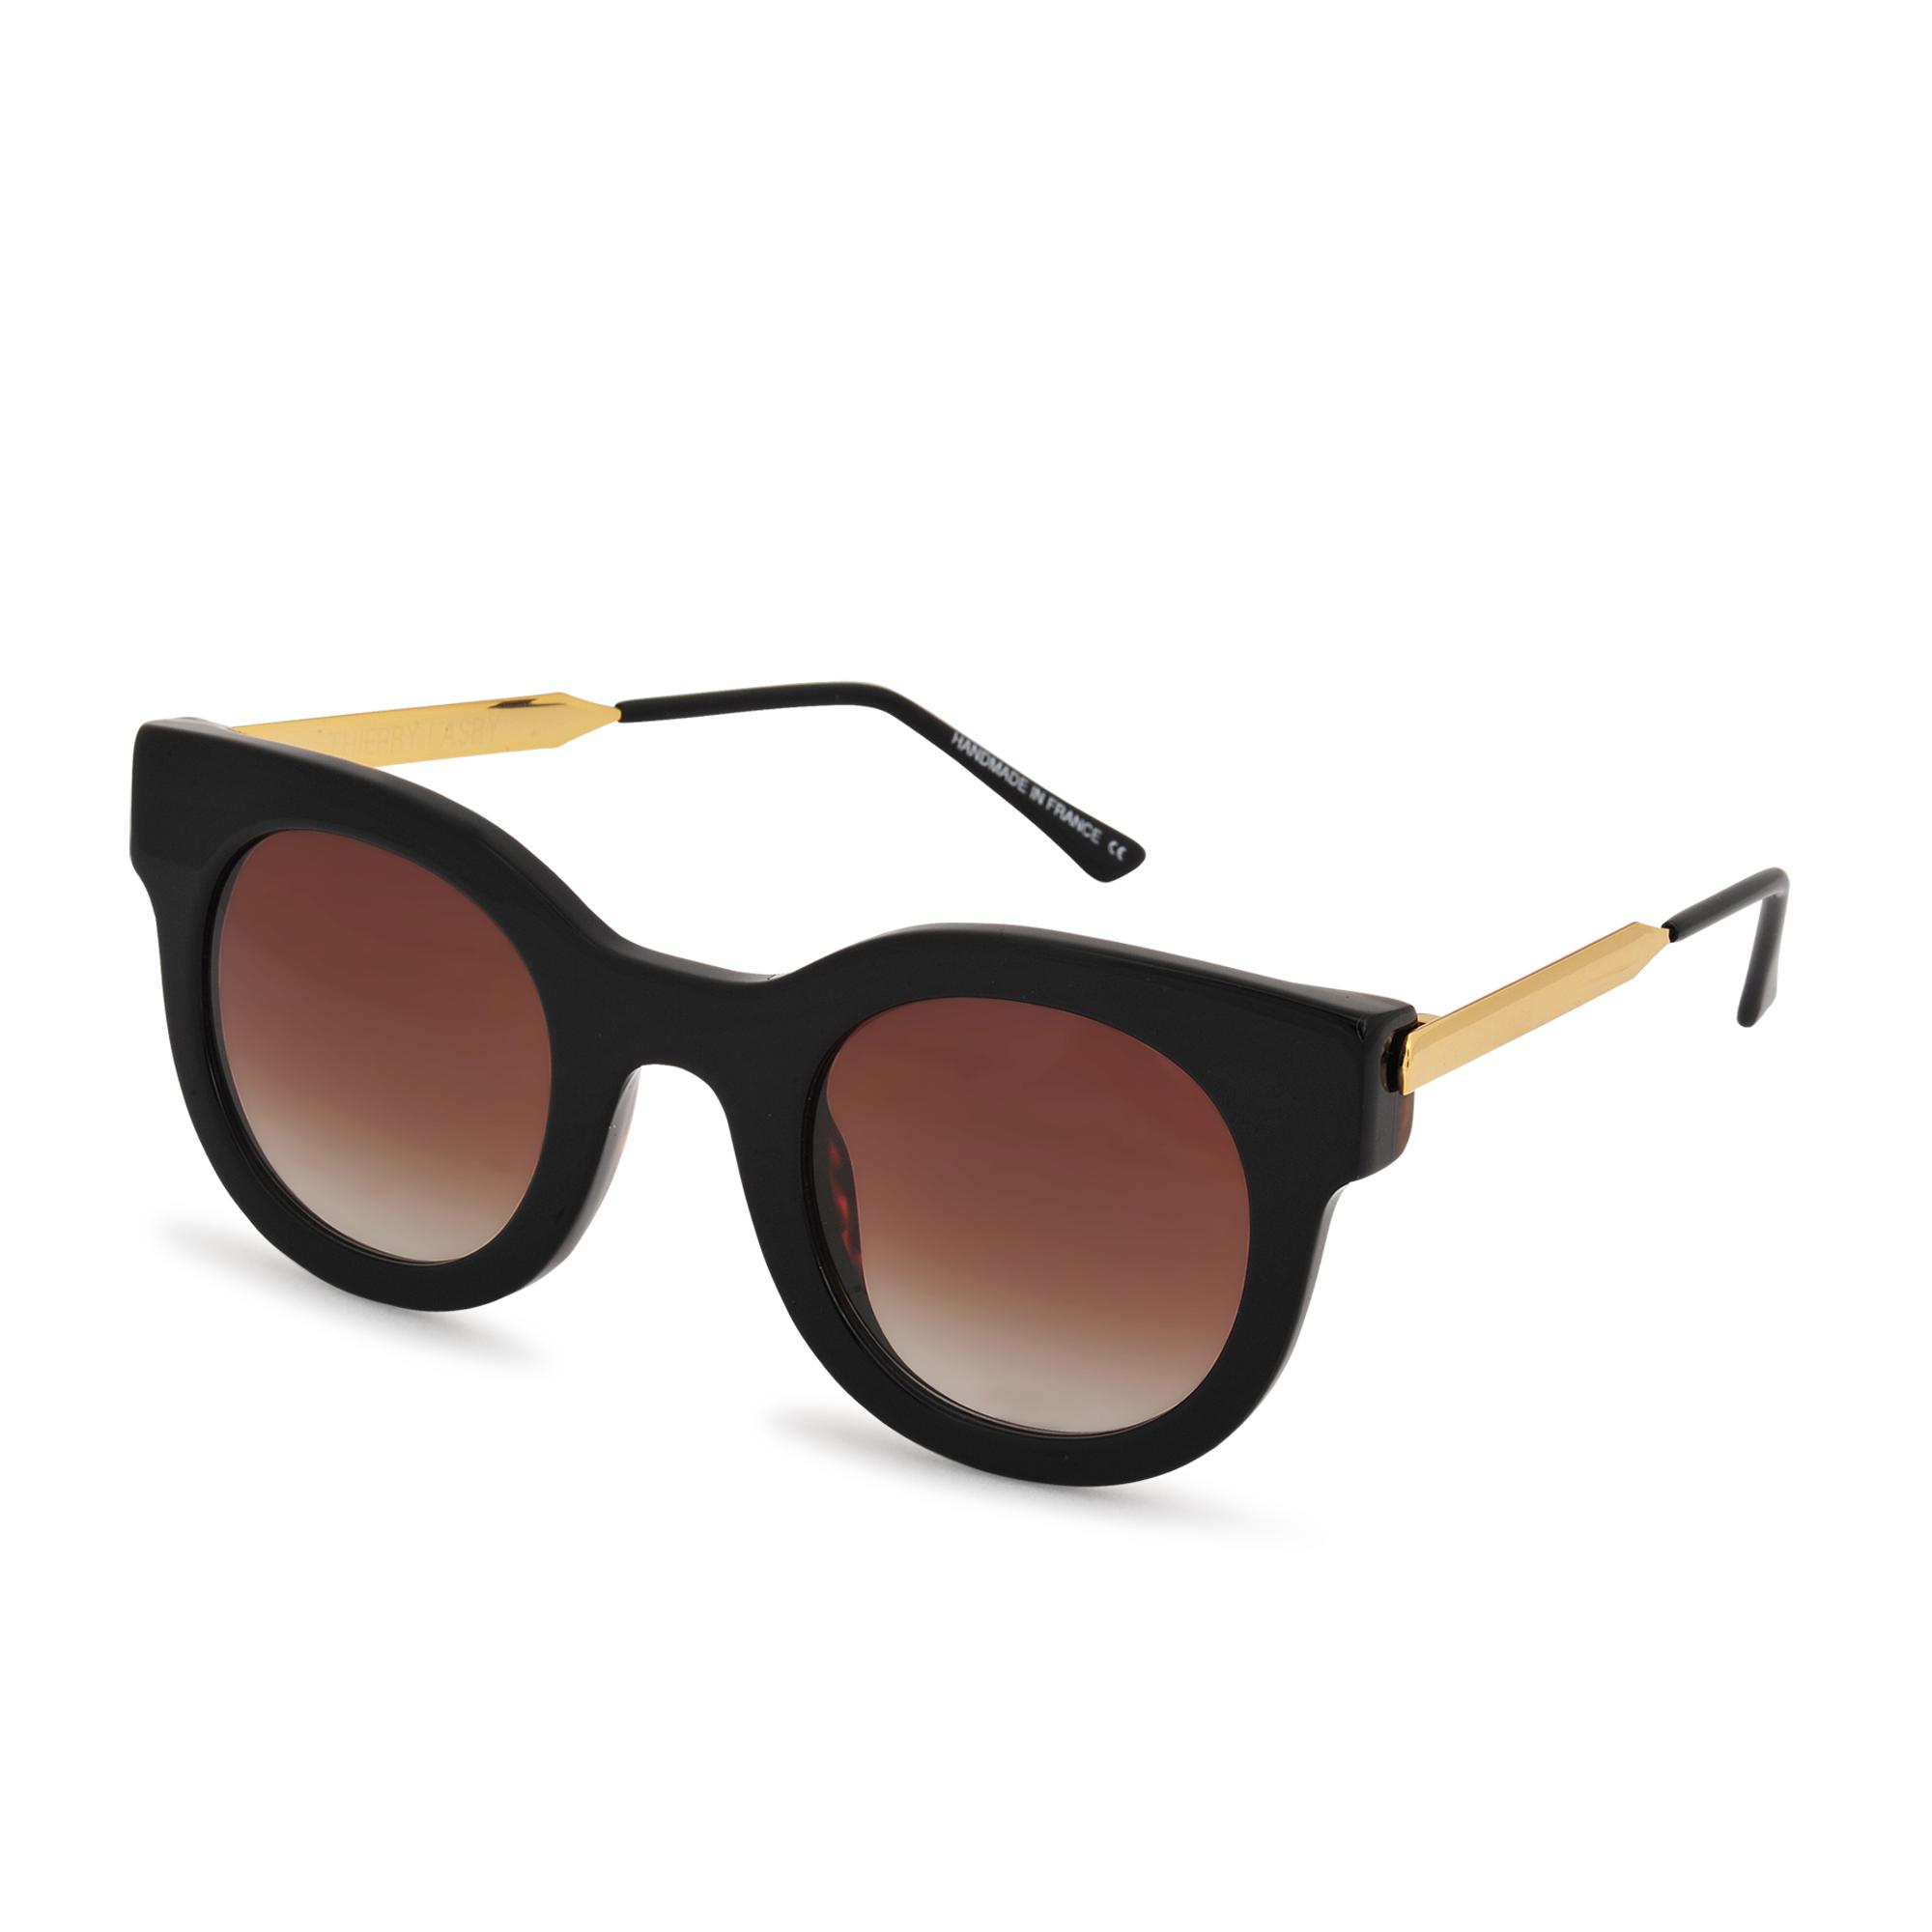 Thierry Lasry Sonnenbrille Draggy 101 GHd8t